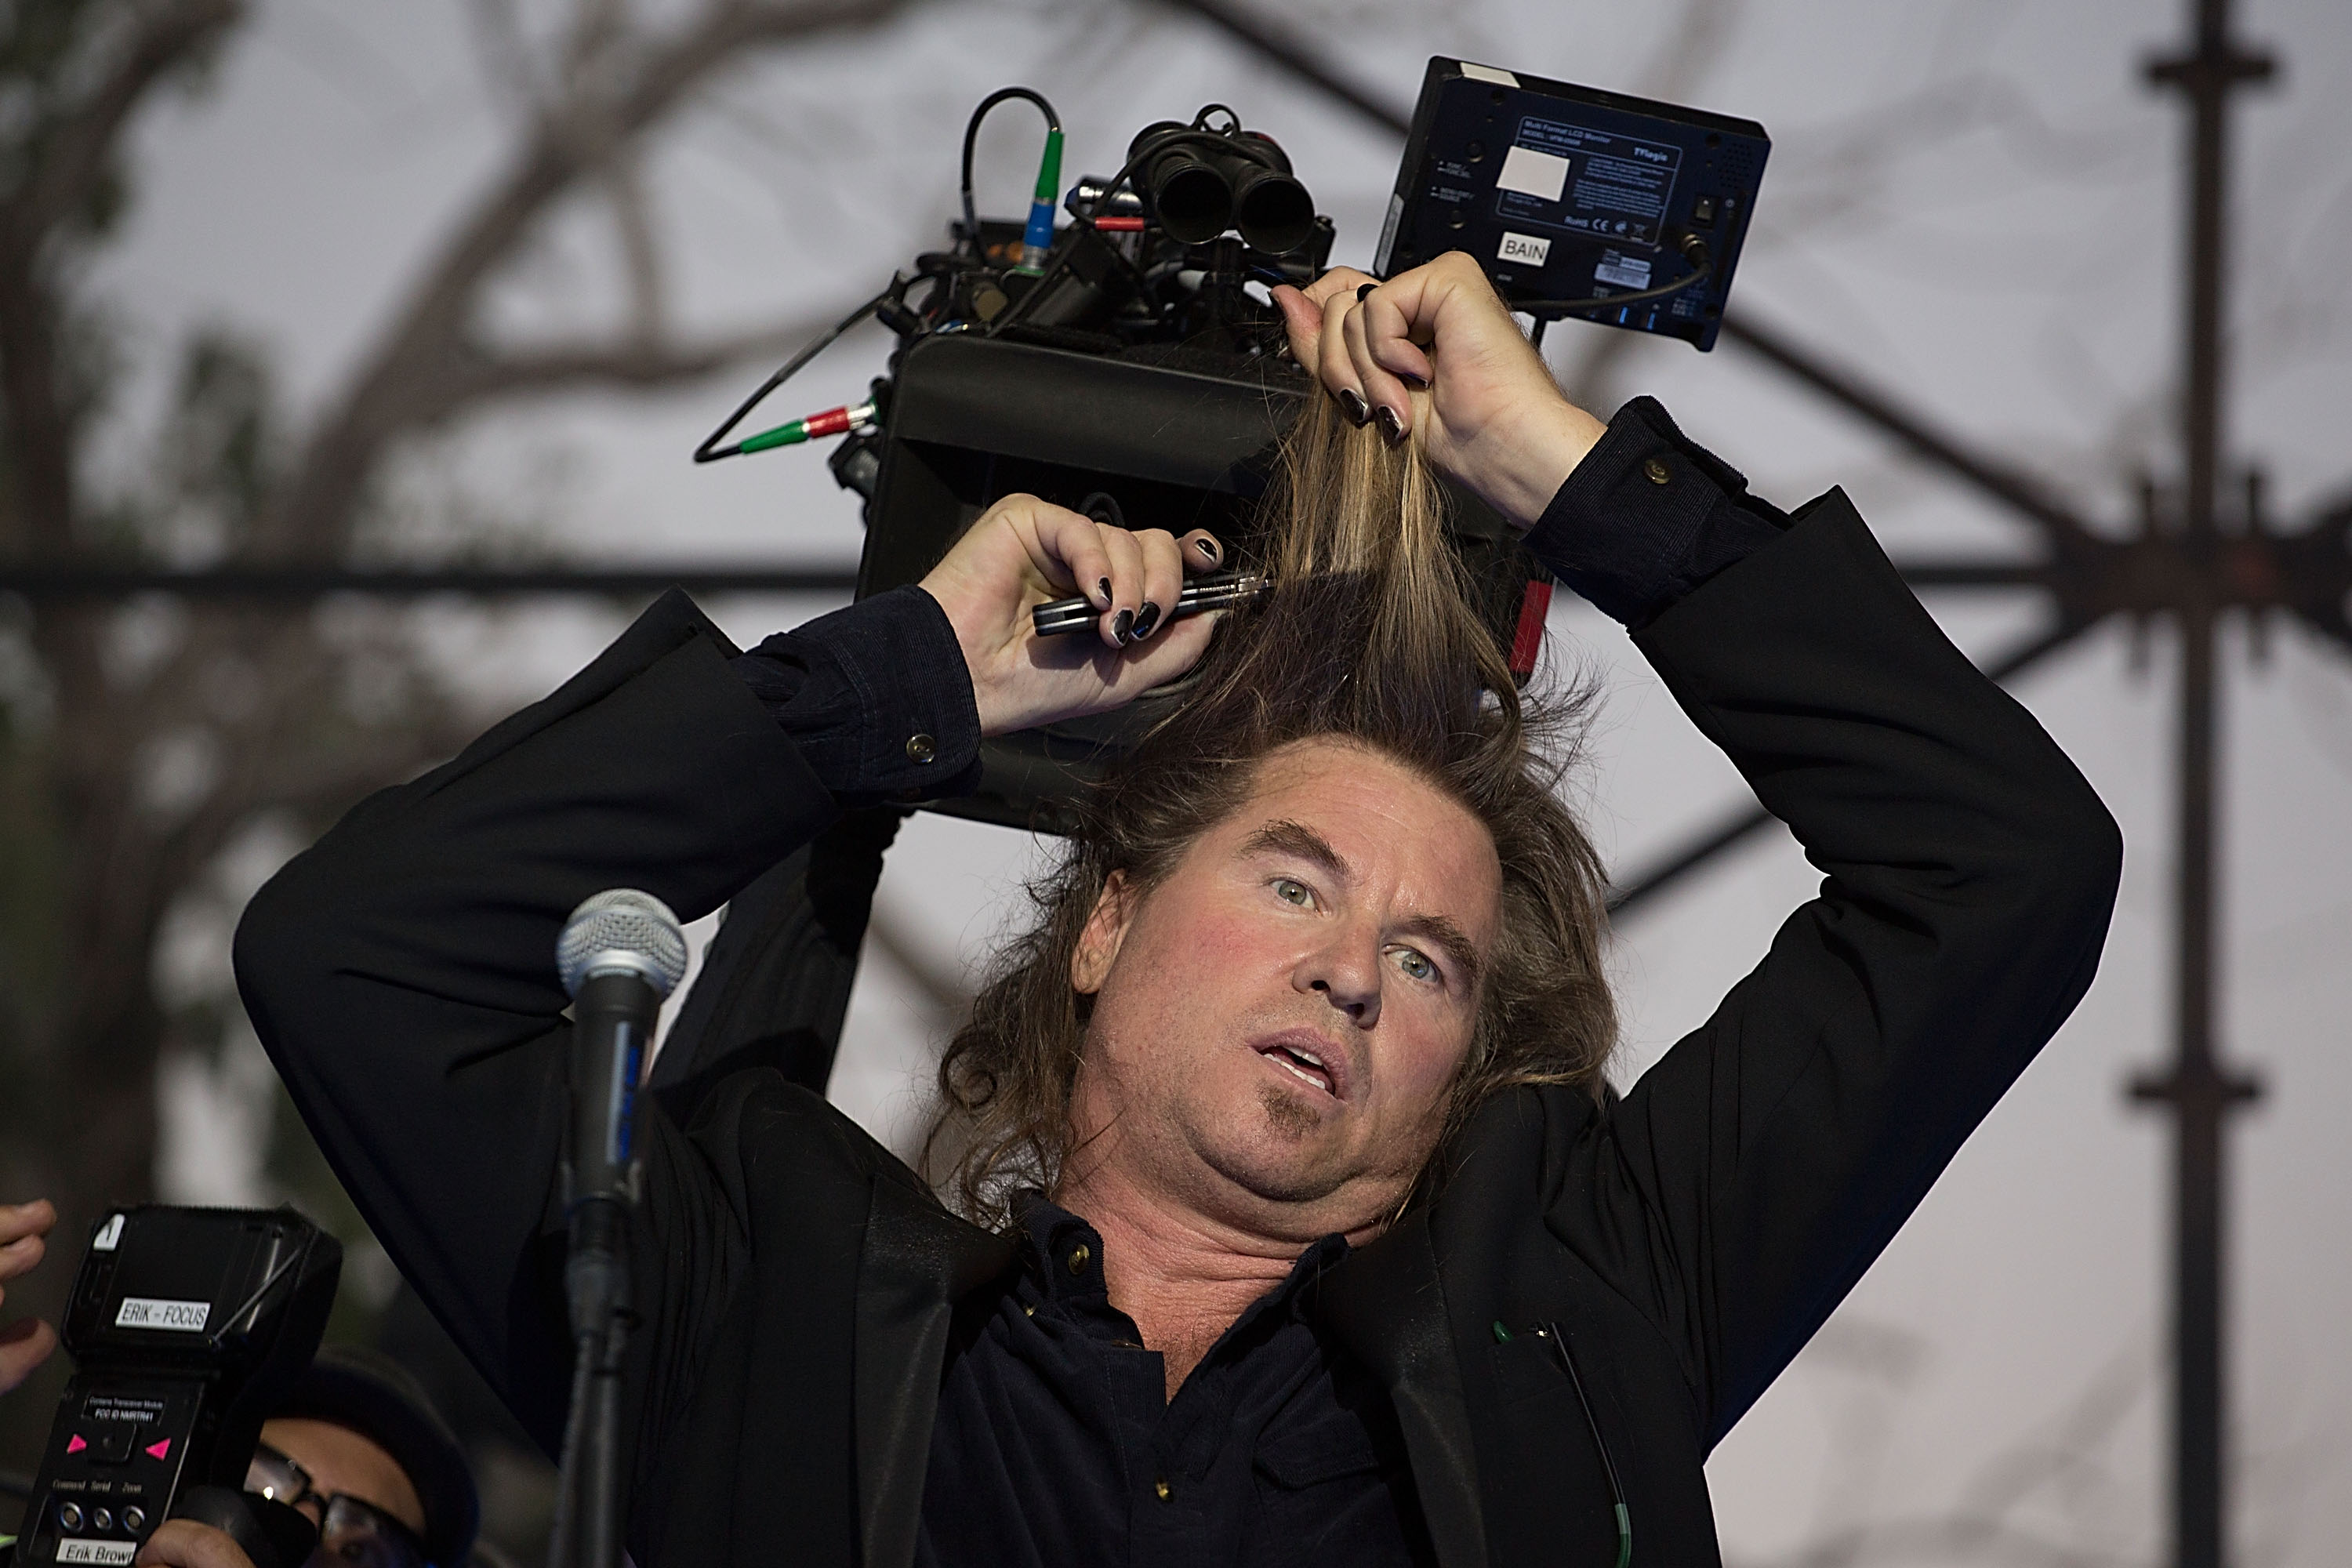 Actor Val Kilmer cuts his hair off on stage while filming the new Terrence Malick movie during day one of Fun Fun Fun Fest at Auditorium Shores on November 2, 2012 in Austin, Texas.